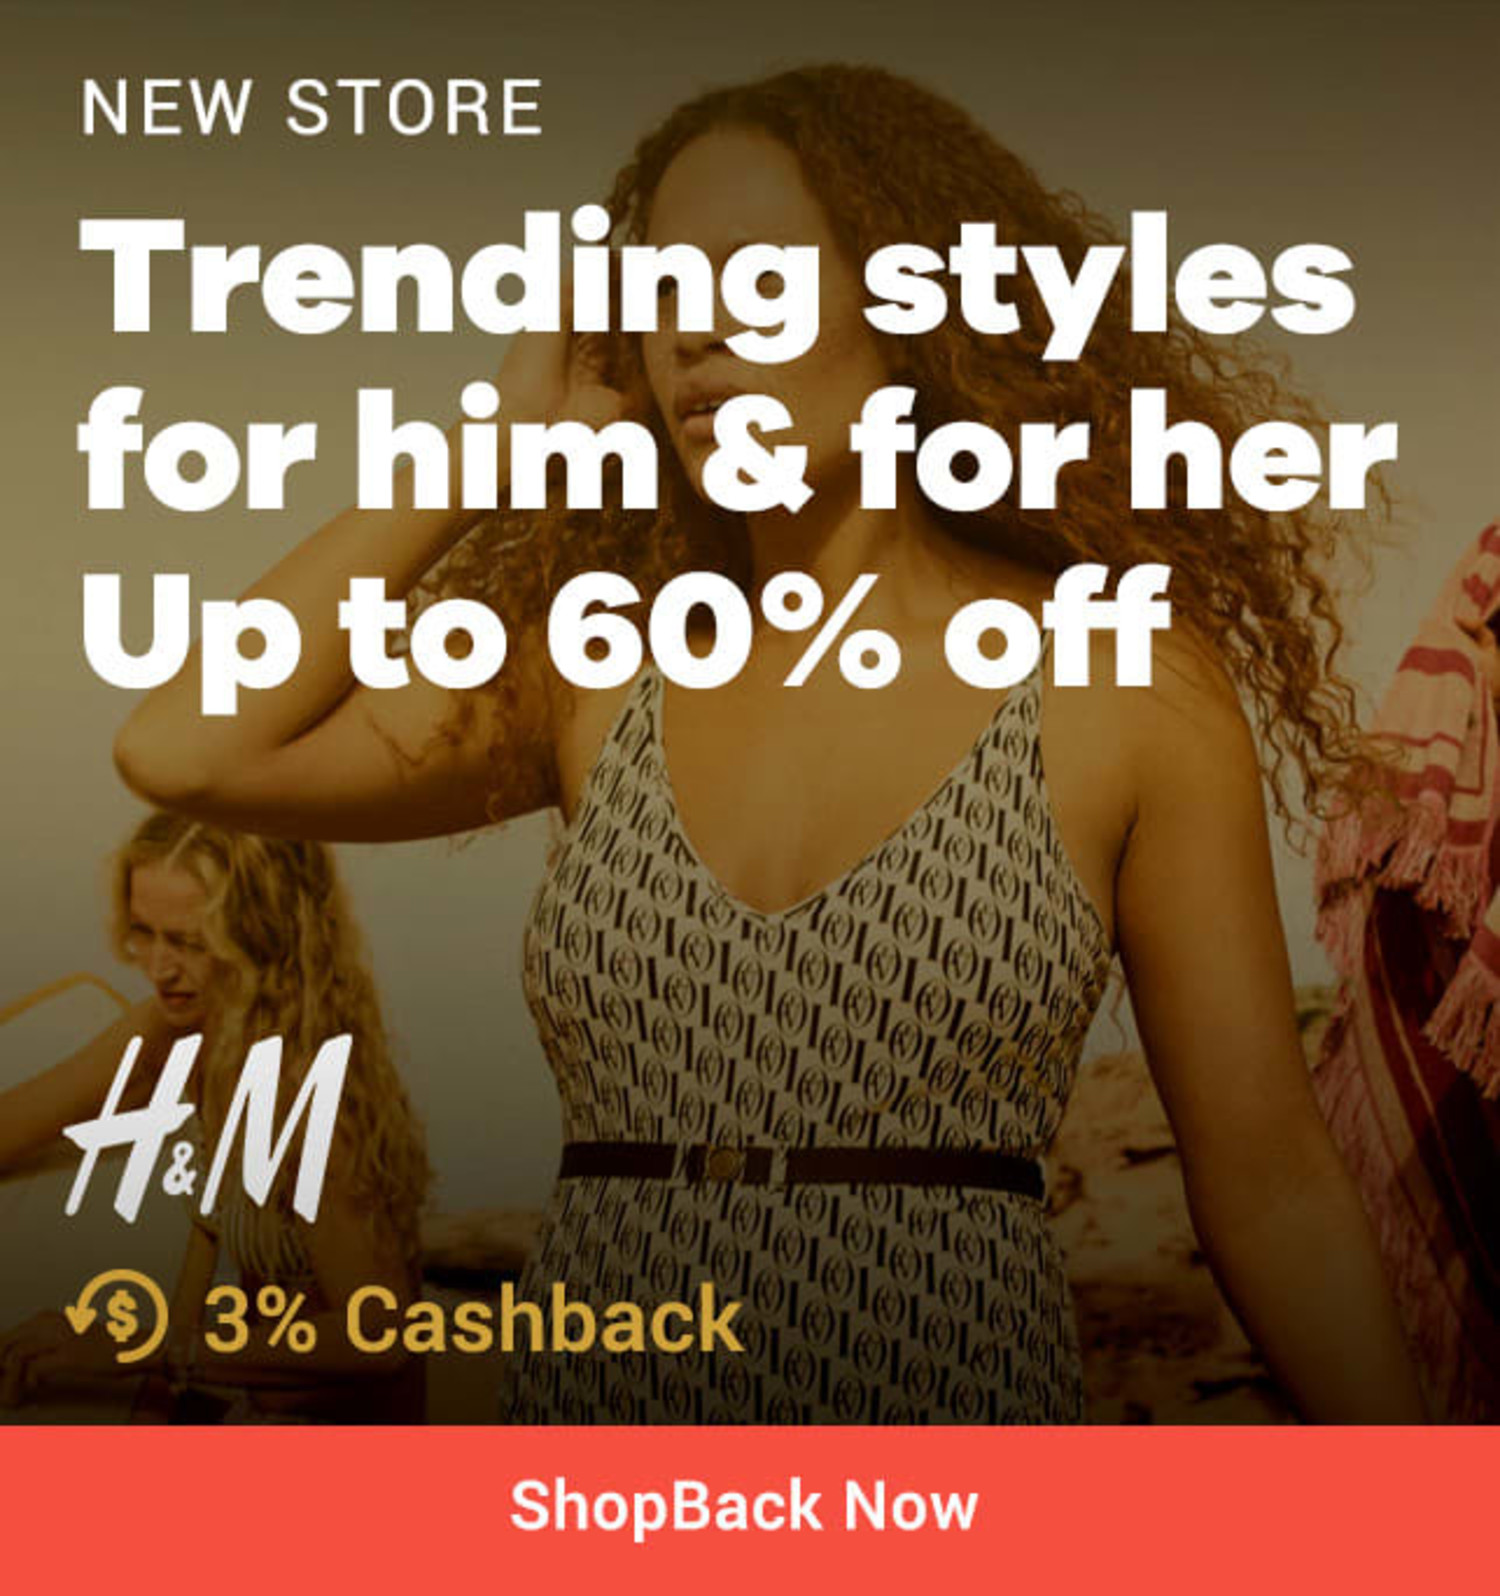 New Store H&M Trending styles for him & for her: Up to 60% off + 3% Cashback